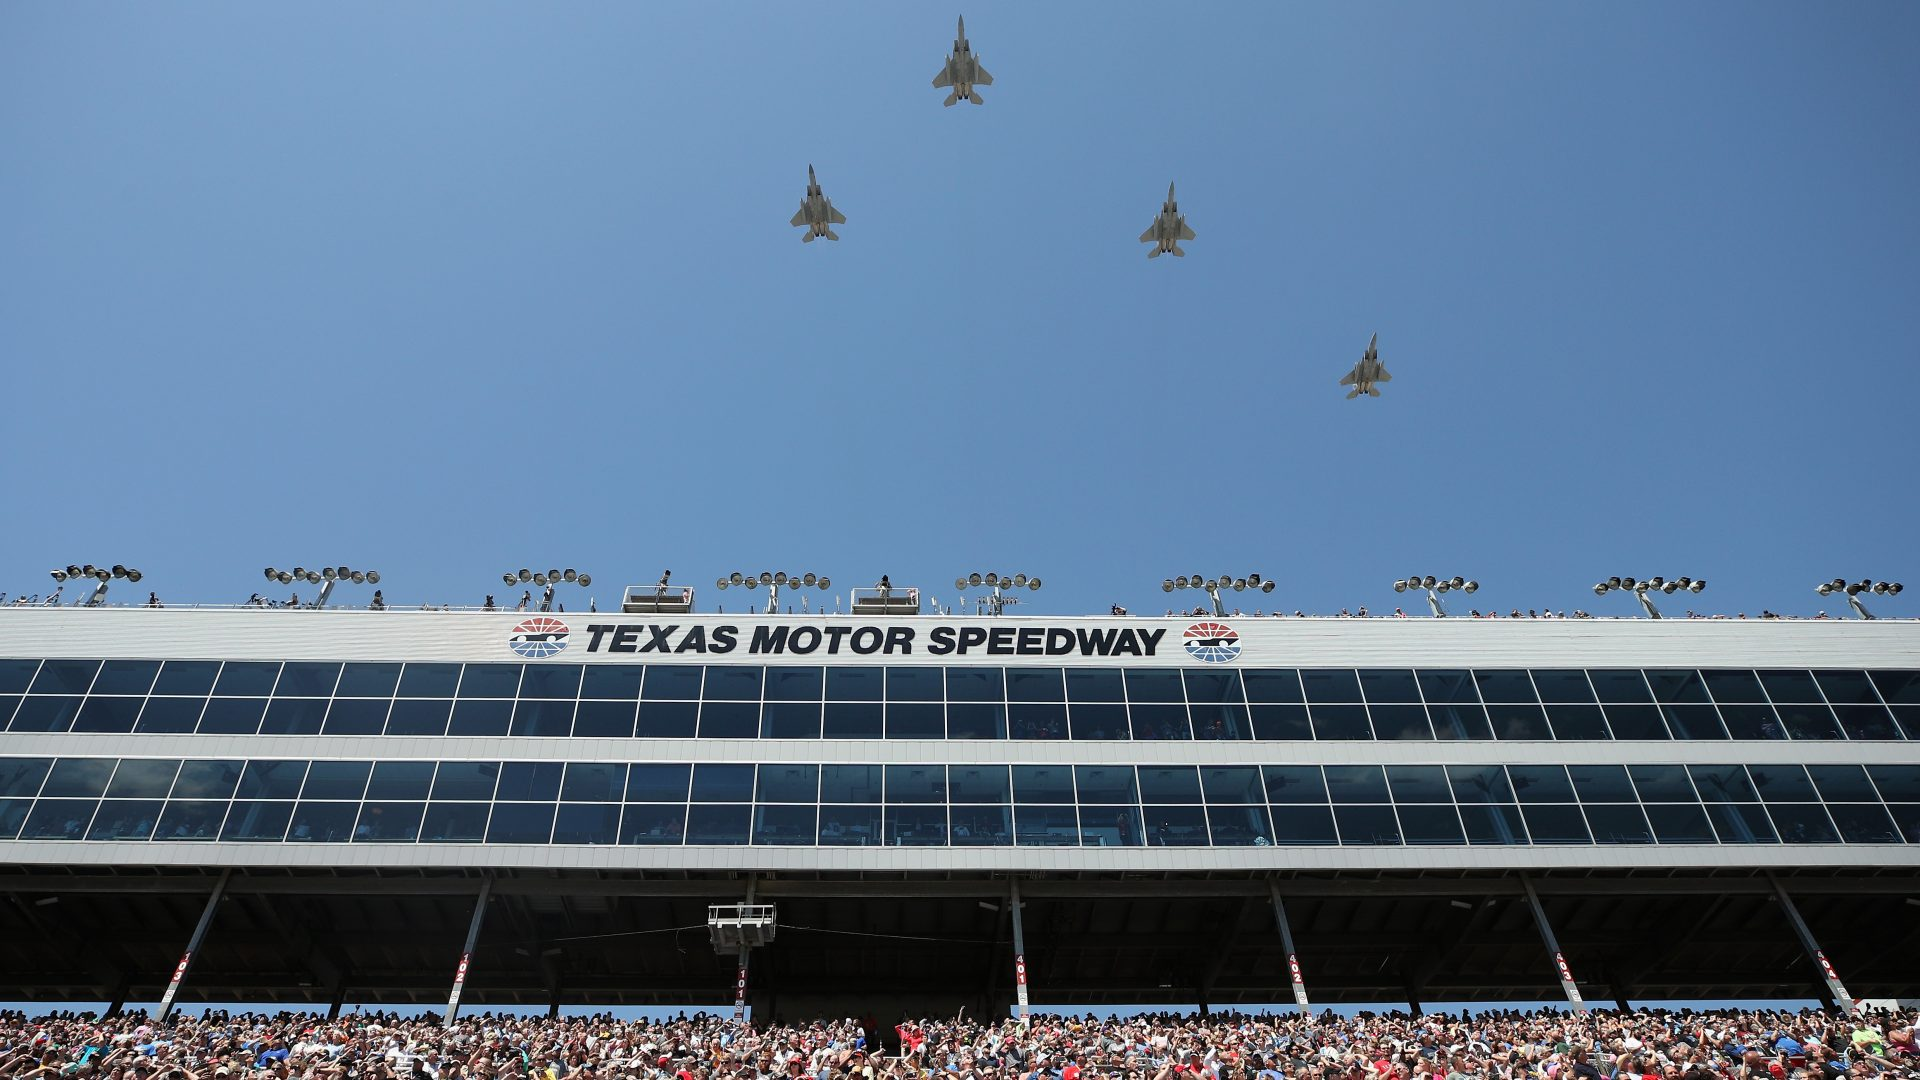 Schedule and stats for texas motor speedway pure thunder for Texas motor speedway schedule this weekend